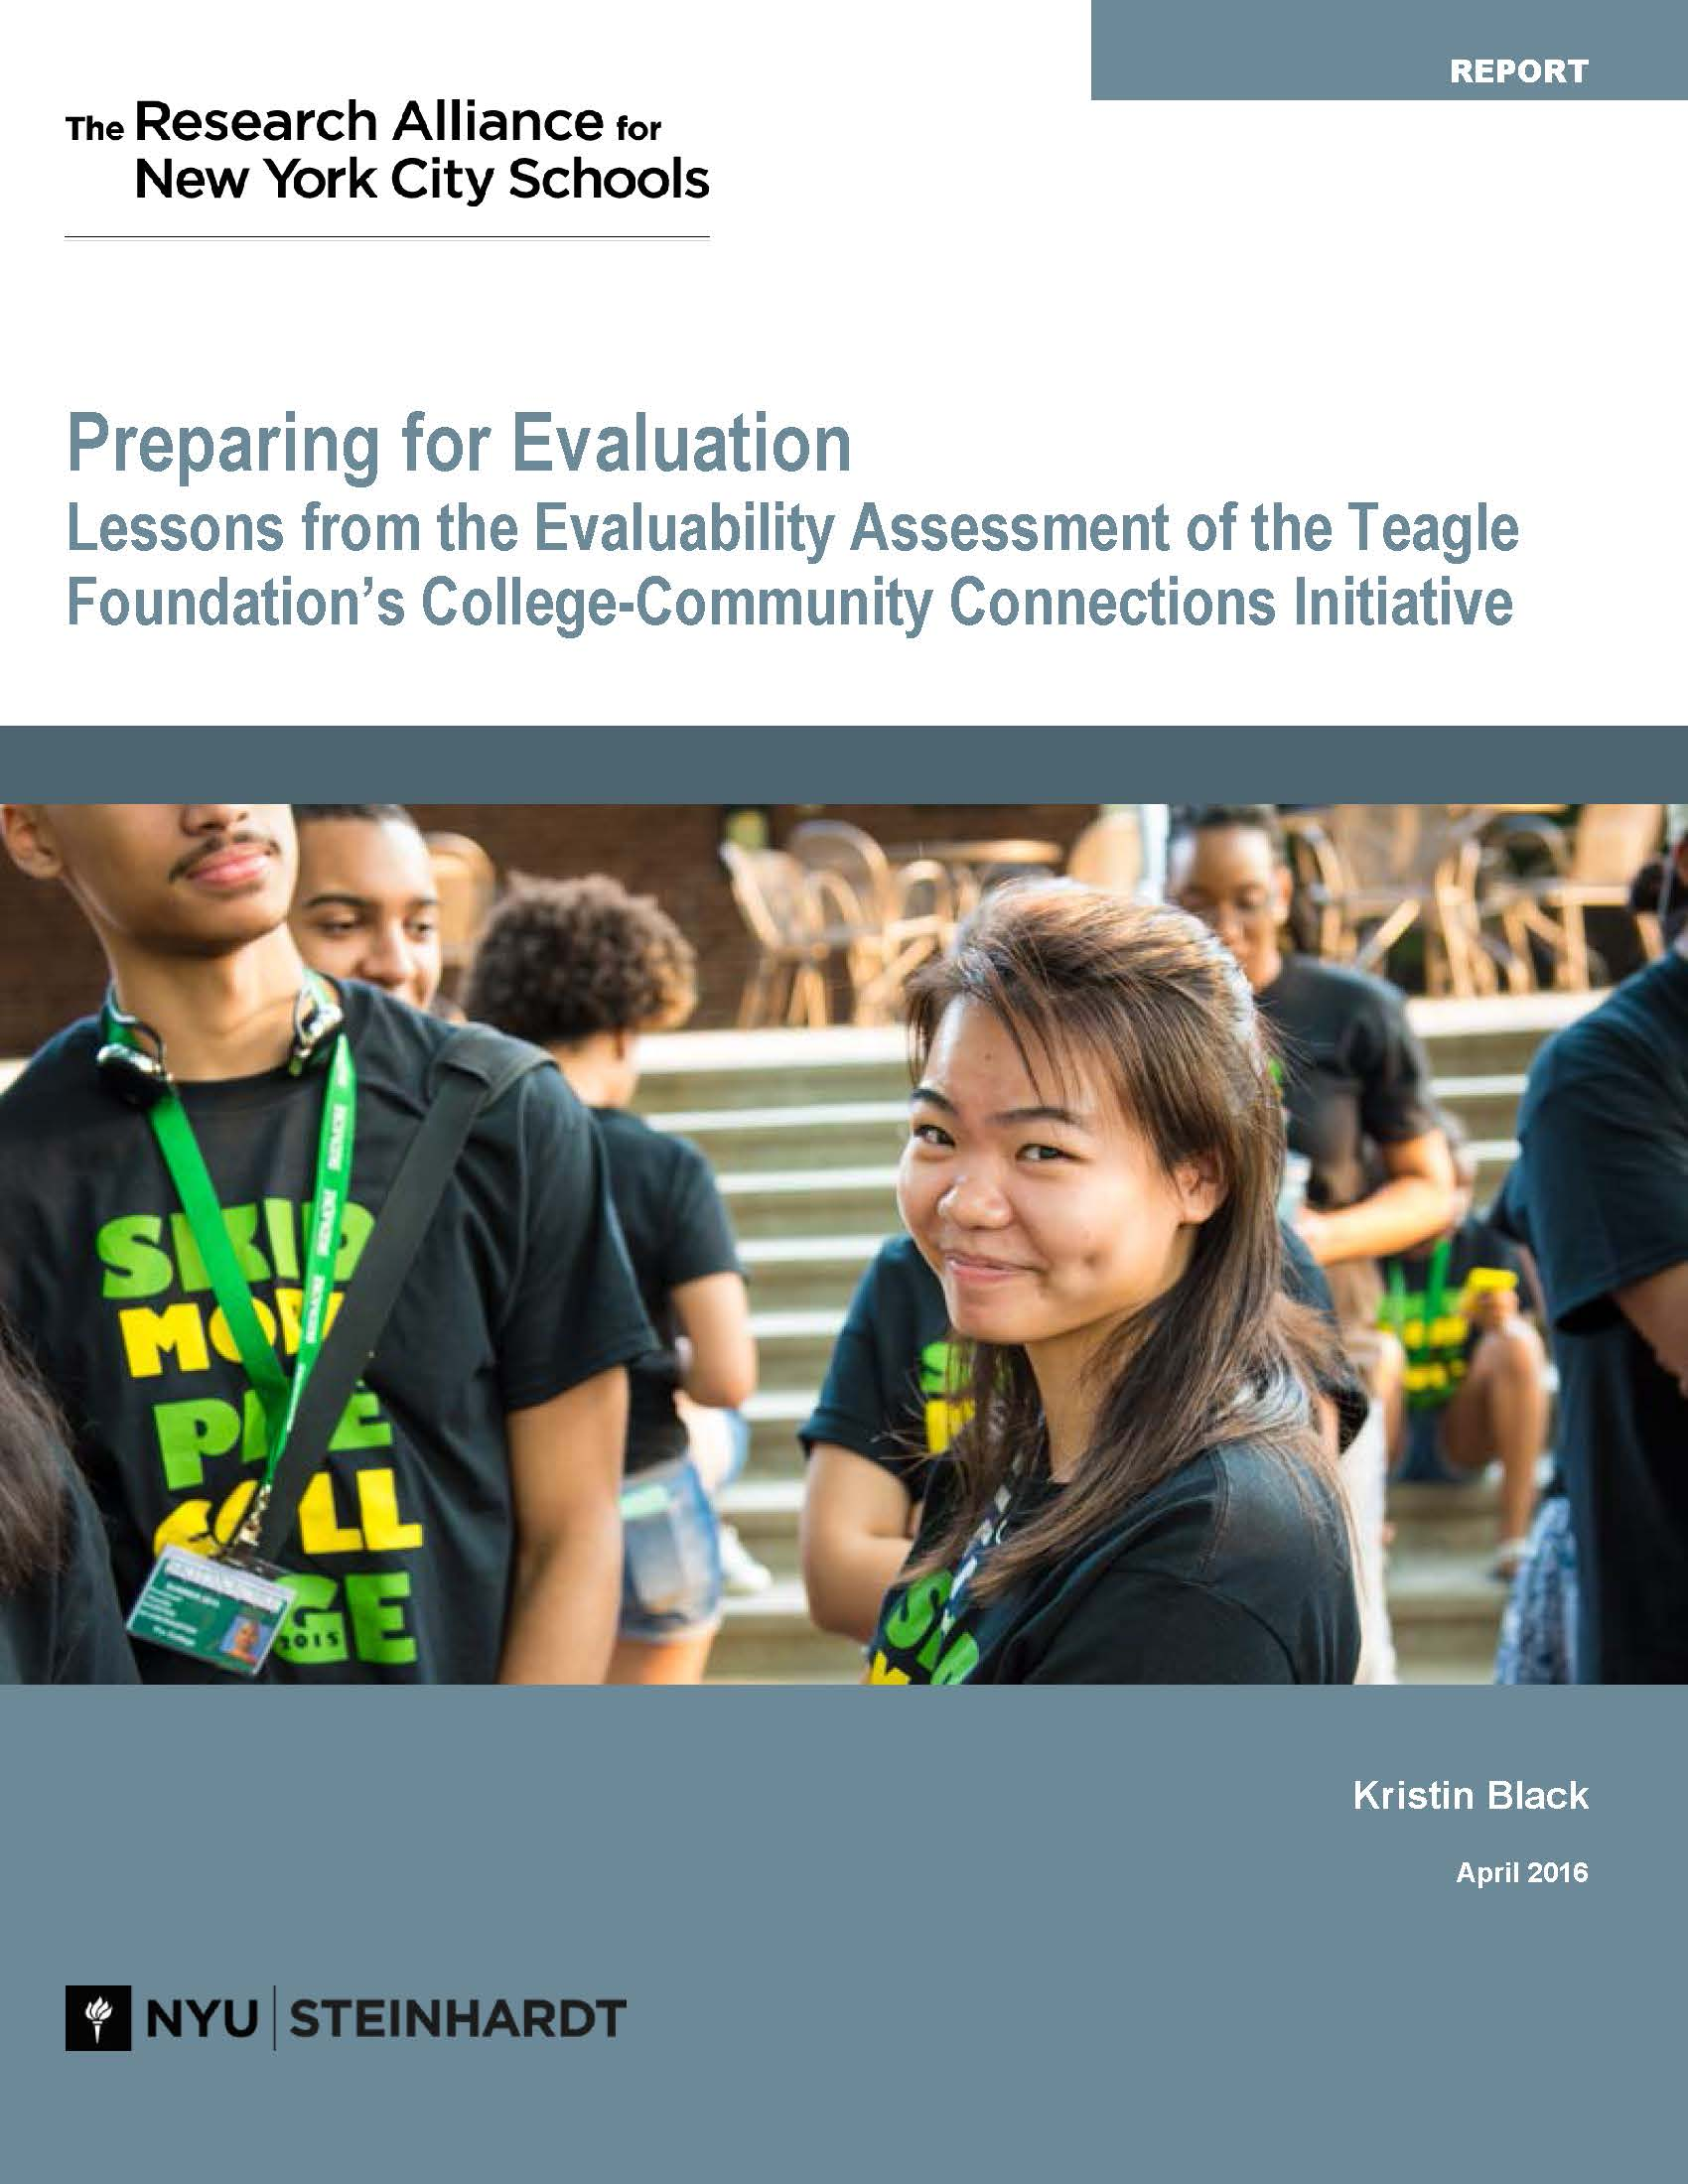 Preparing for Evaluation: Lessons from a Review of the College-Community Connections Initiative